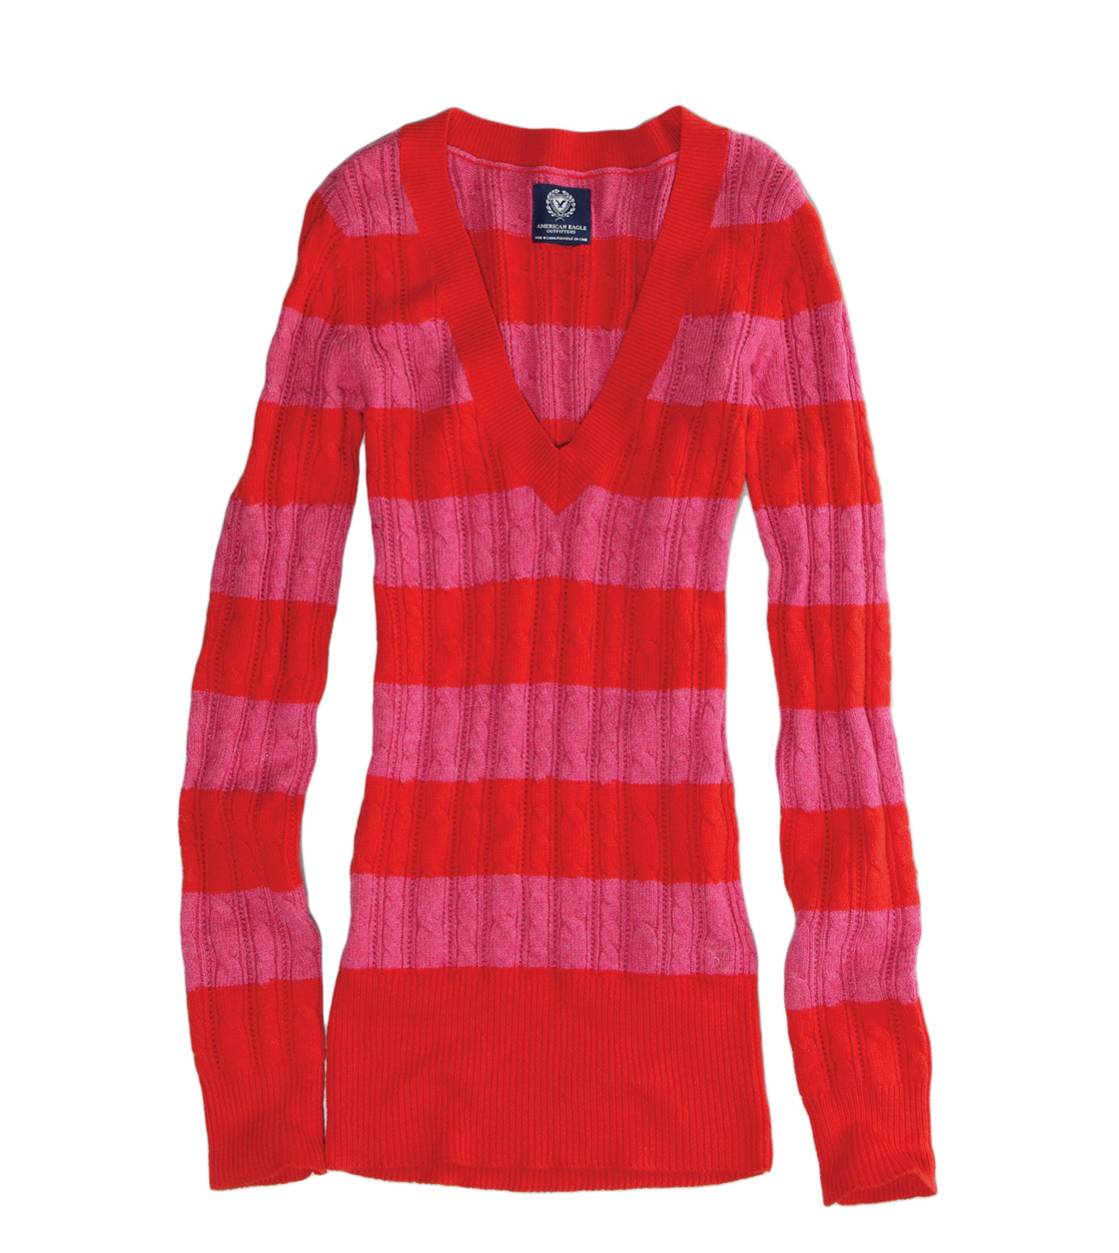 Pink AE Striped Sweater